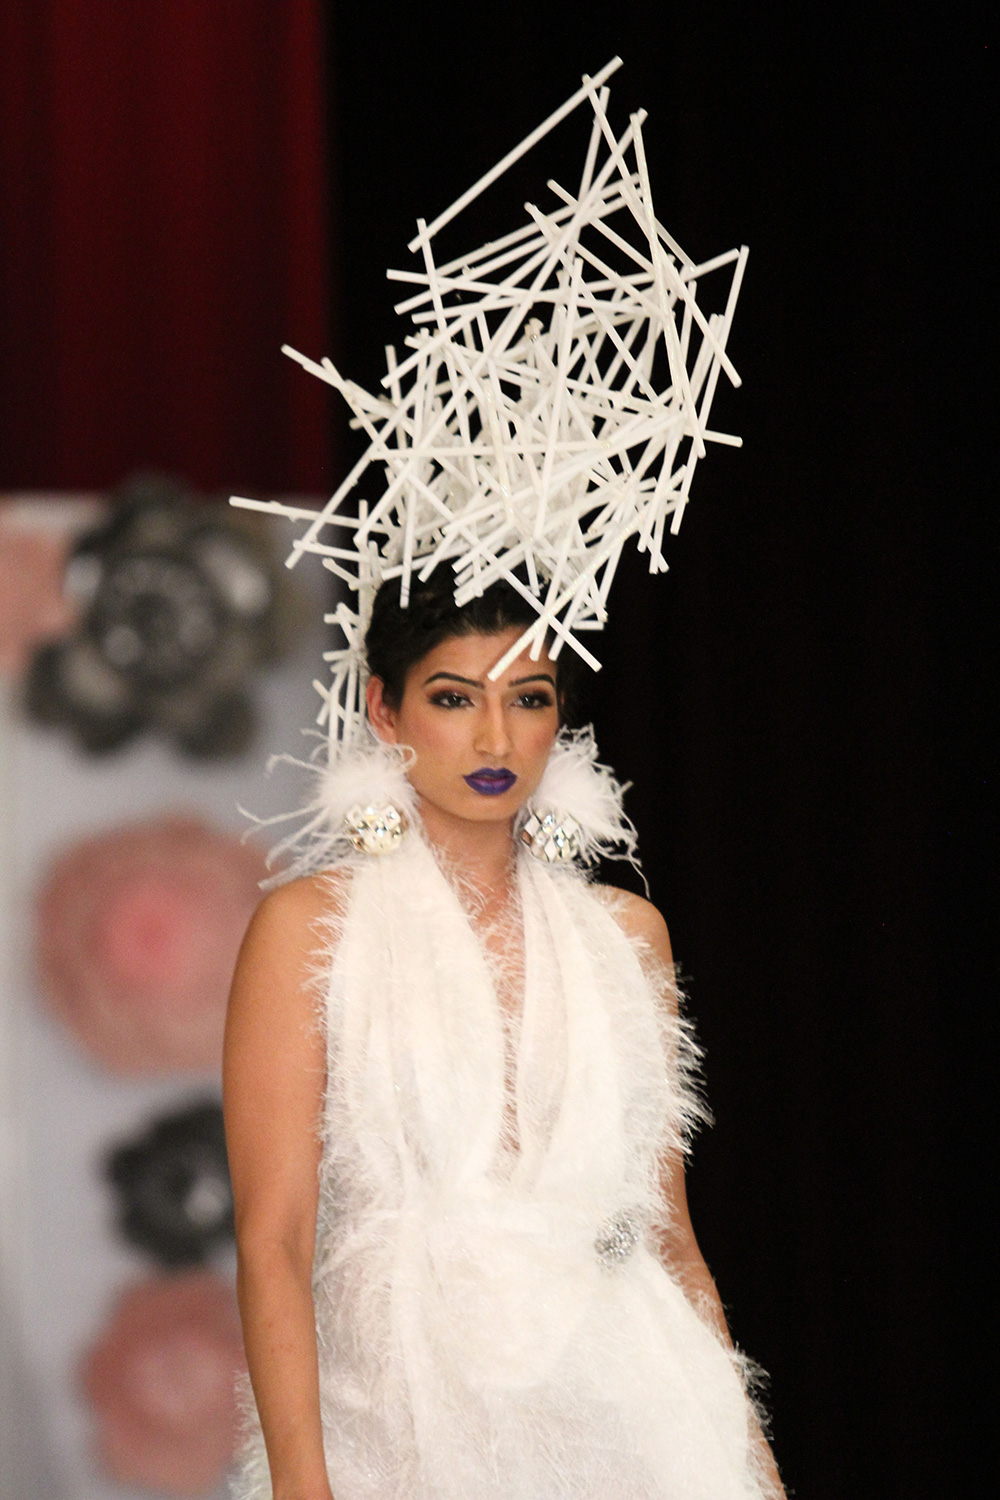 Artistry of Hair Fashion Show